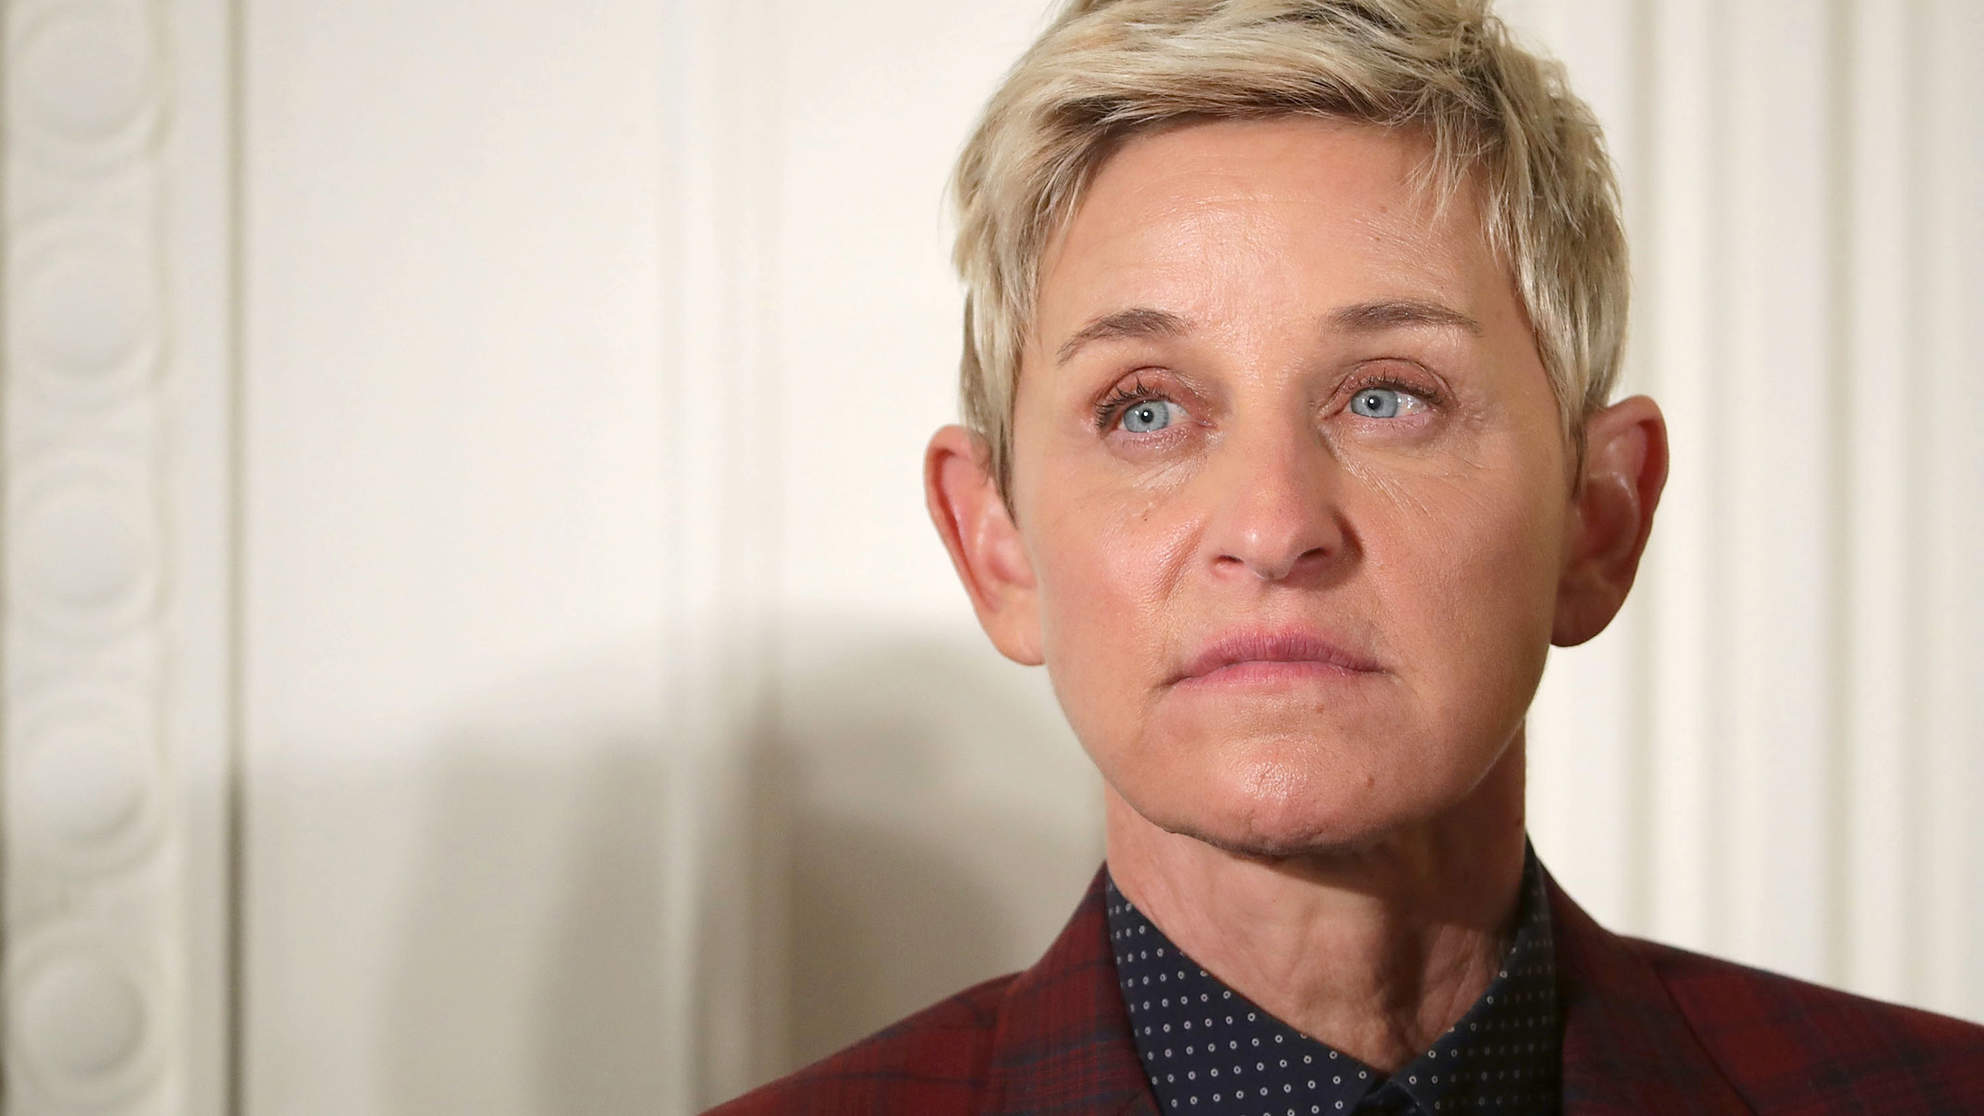 Ellen DeGeneres Recalls Being Sexually Assaulted by Her Stepfather as a Teenager